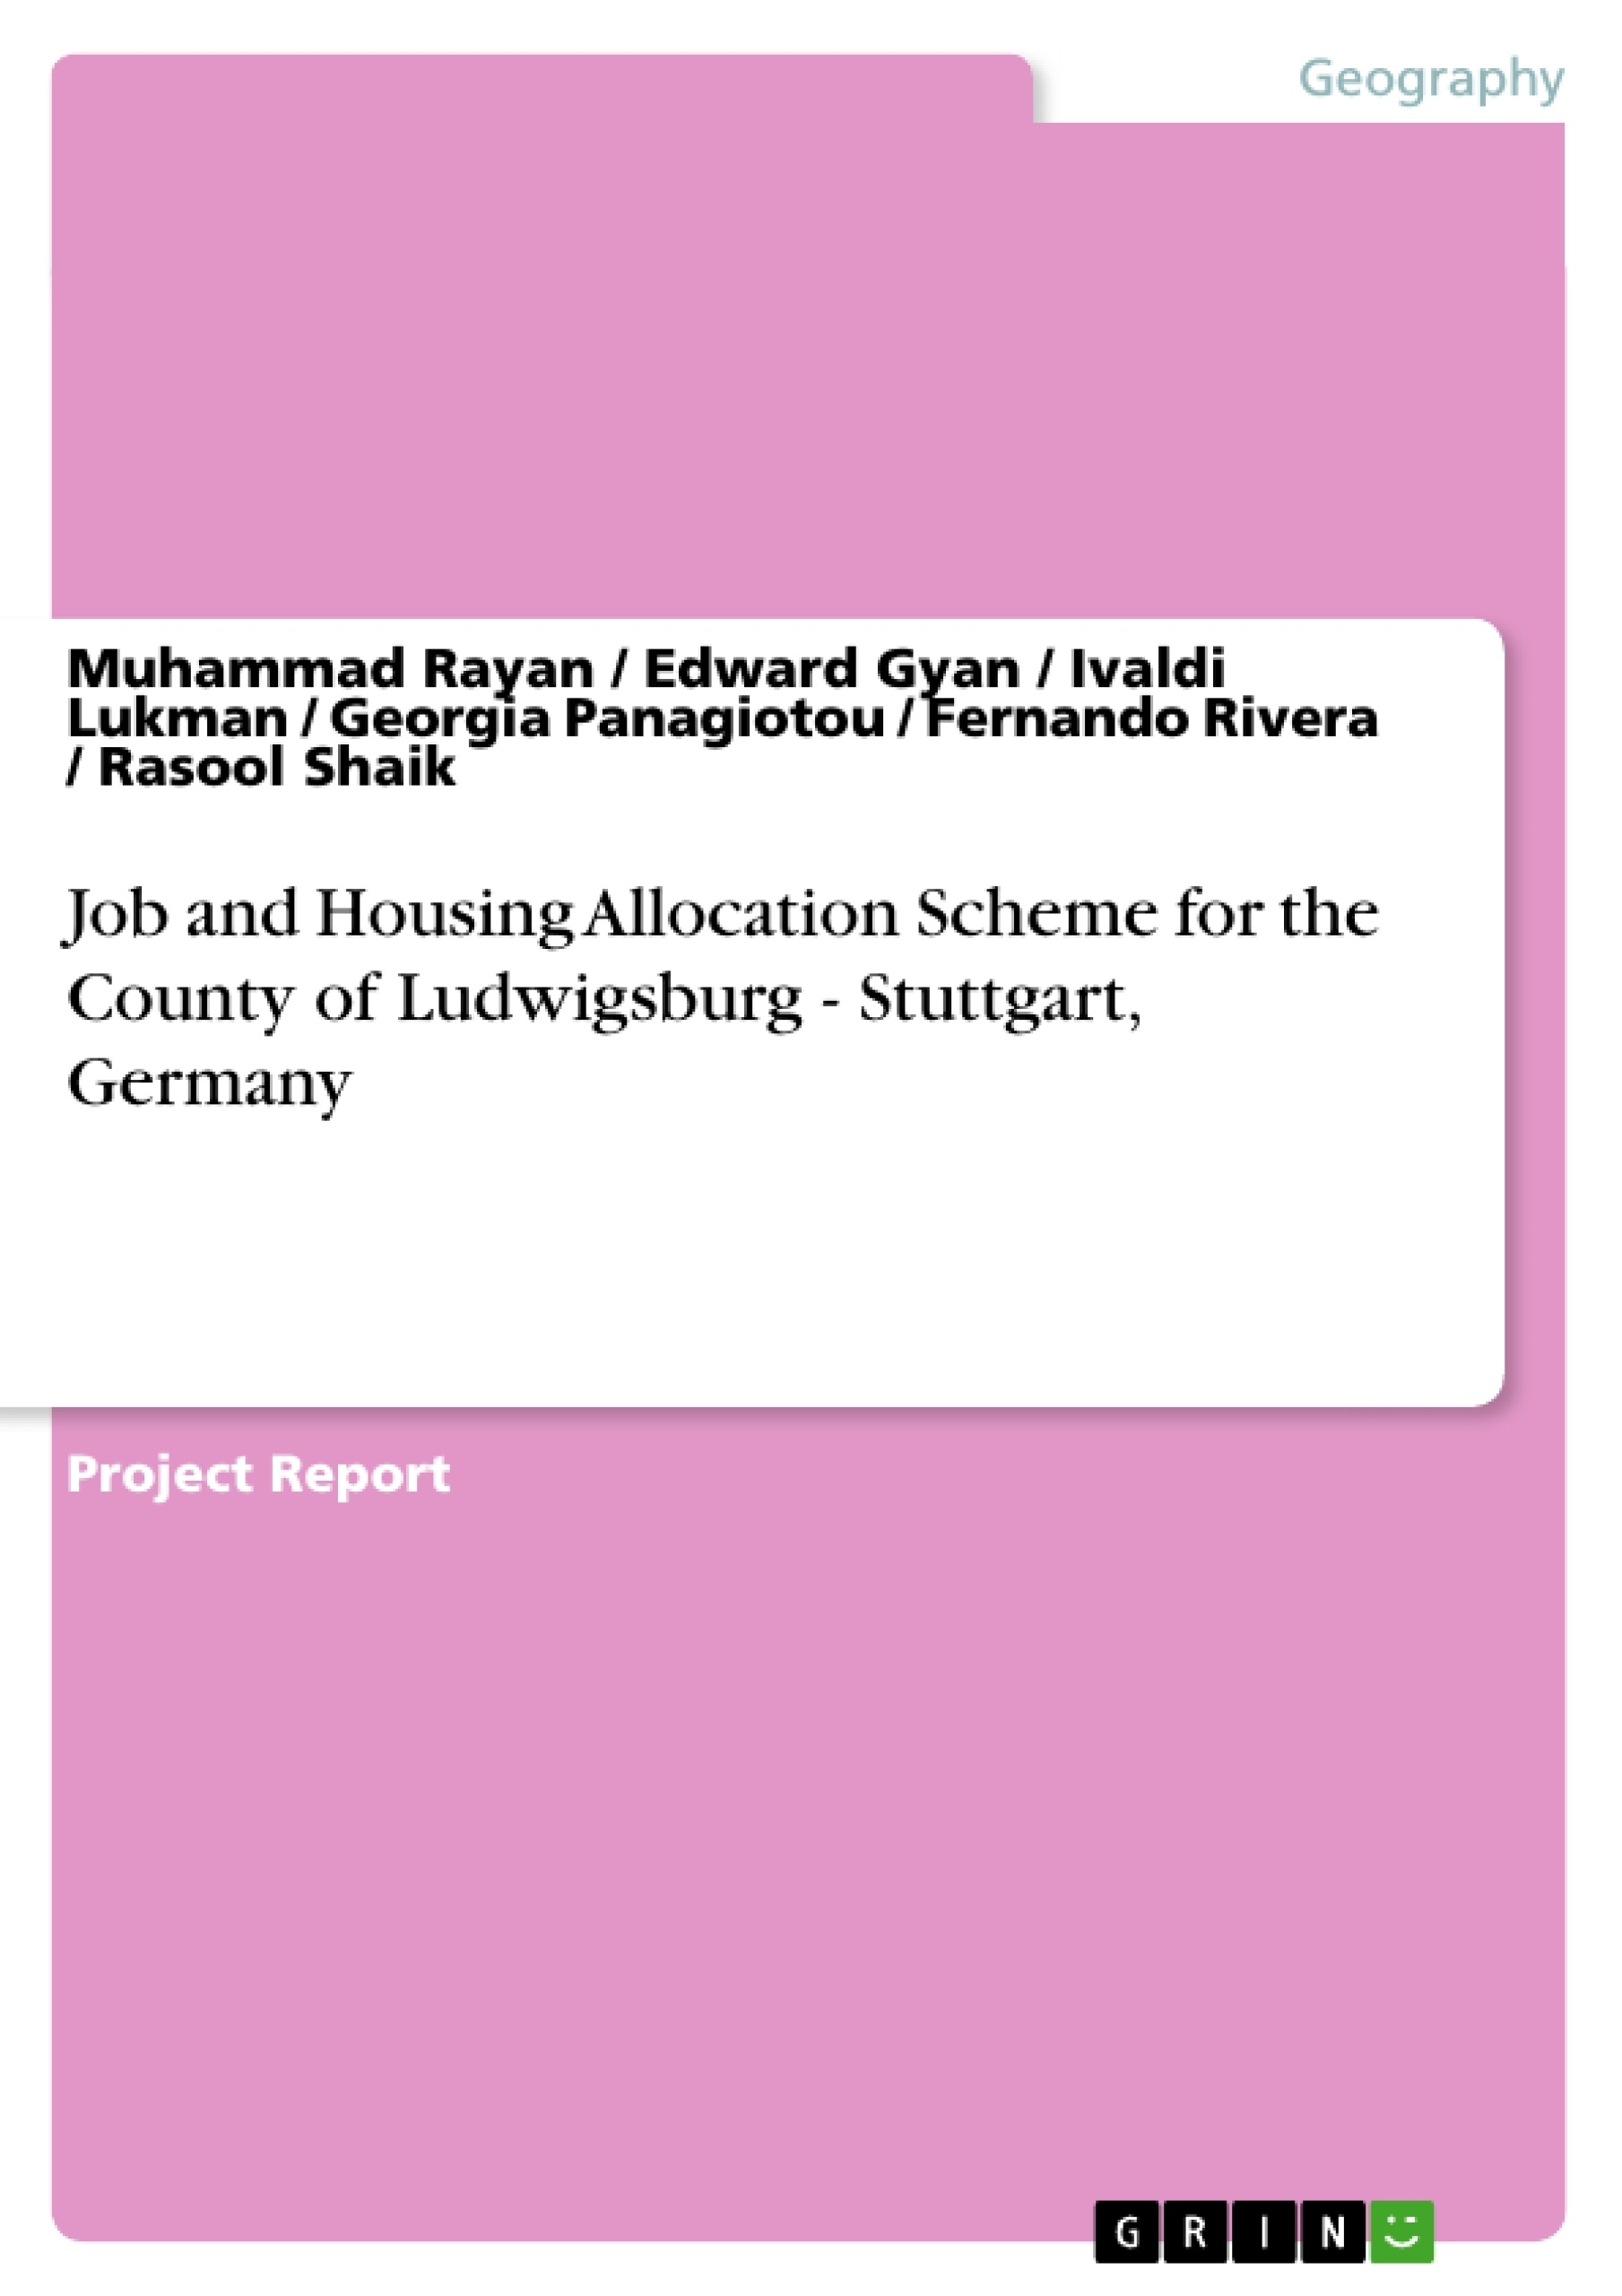 Title: Job and Housing Allocation Scheme for the County of Ludwigsburg - Stuttgart, Germany